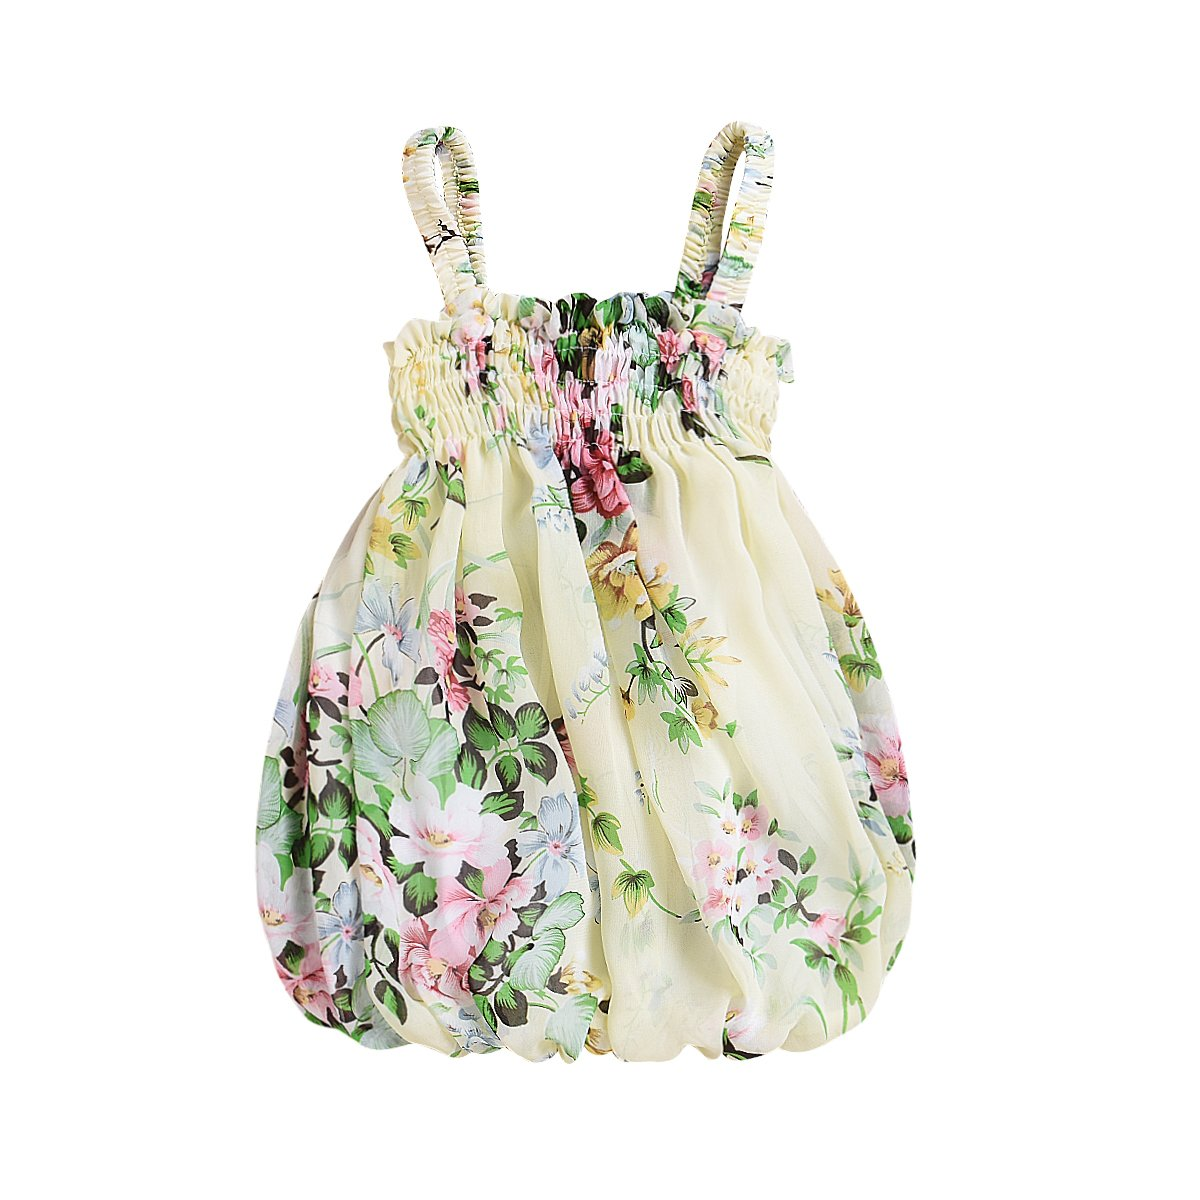 Baby Girl Toddler Dresses Cute Flower Print Sleeveless Strap Summer Sundress Clothes Outfits (Green, 12-24 Months)